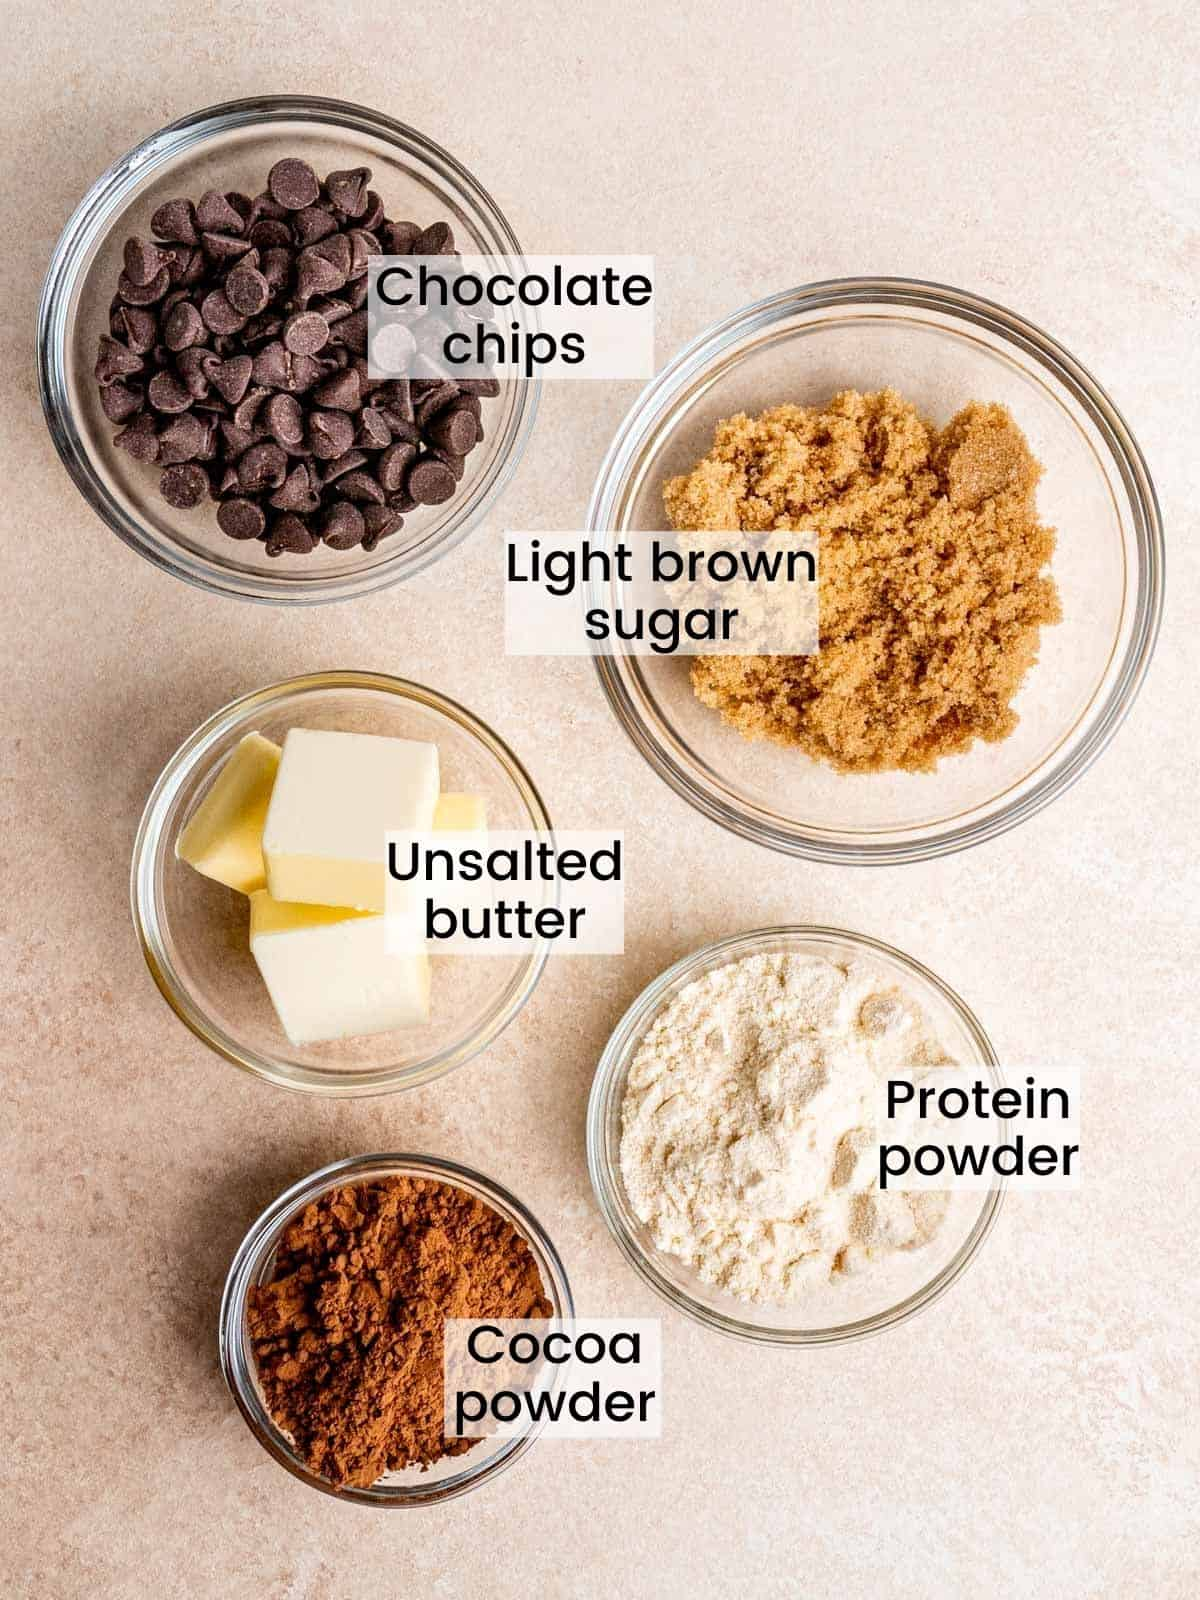 brownie batter ingredients: chocolate chips, light brown sugar, unsalted butter, protein powder, cocoa powder